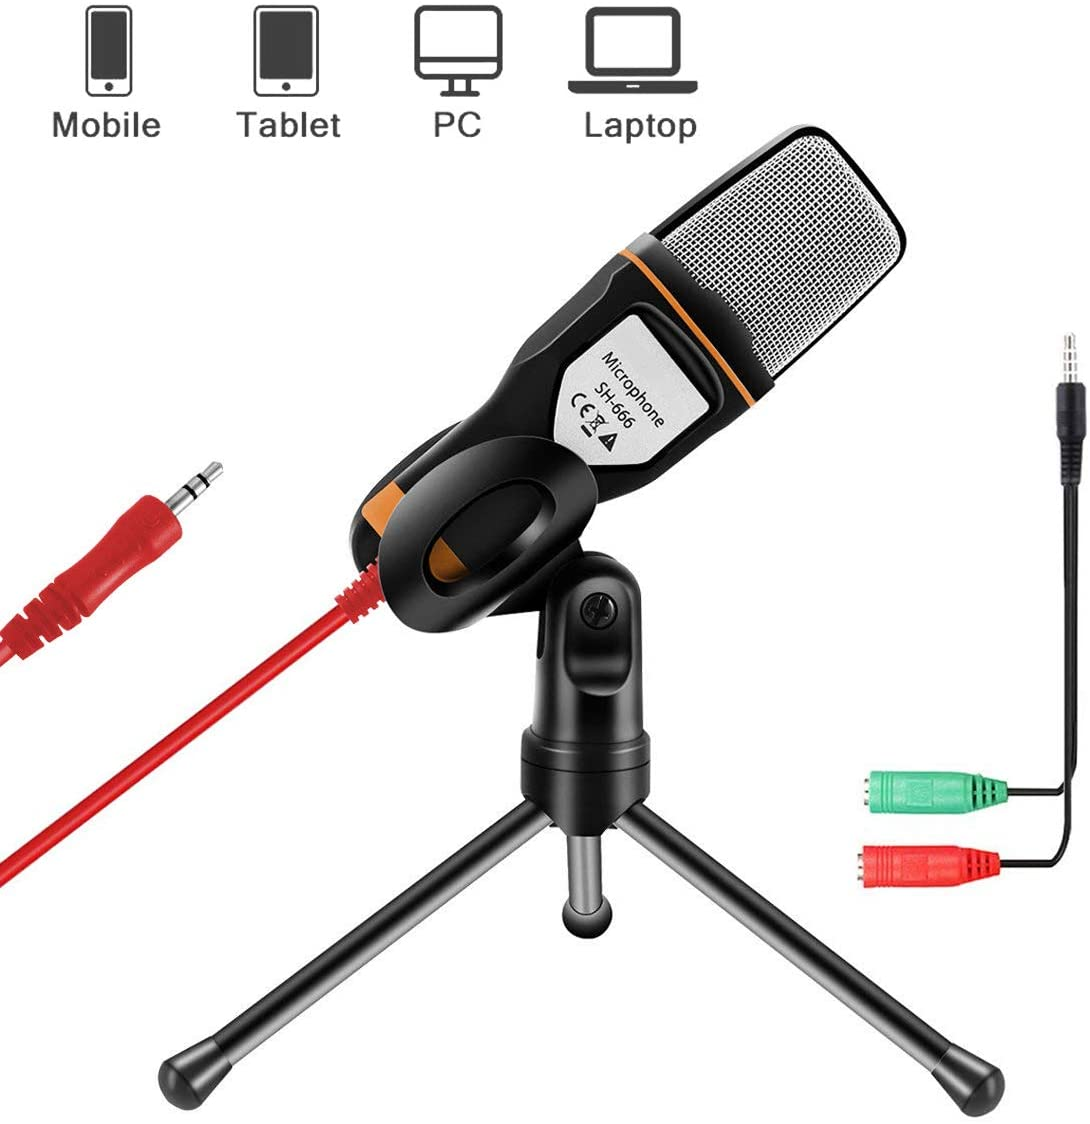 AOBETAK External PC Microphone with Stand for PC and Smartphone, Professional 3.5mm Jack Condenser Mic with 3.5mm Stereo Jack Splitter, for Loptop iPad Mac- Recorder Singing YouTube Skype, Black